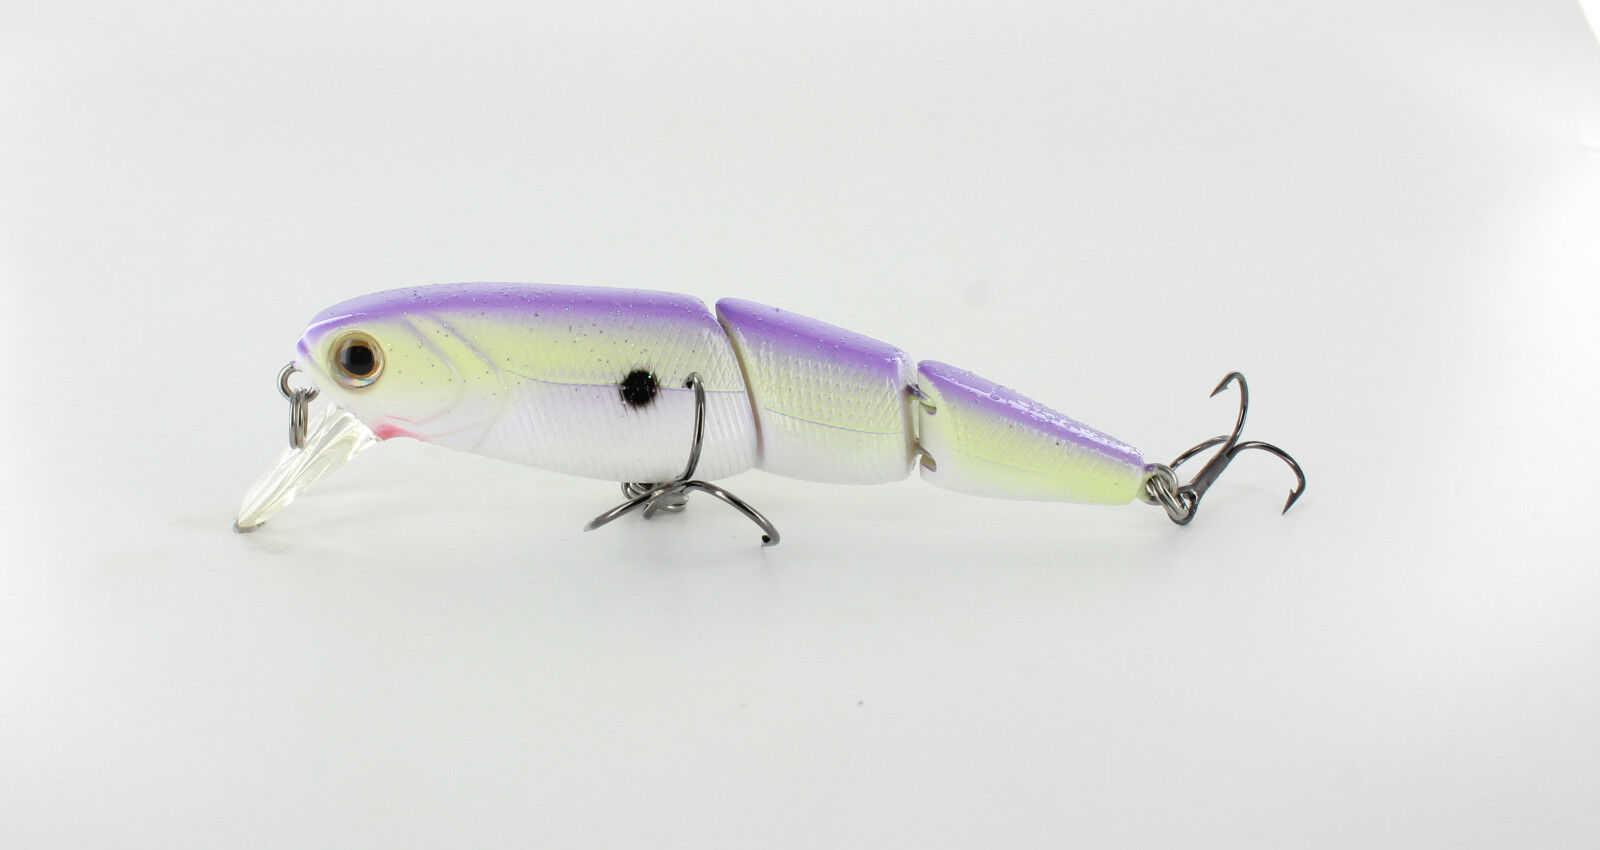 most natural swimmers on the market River2Sea,quality lure V-Joint Minnow130 su